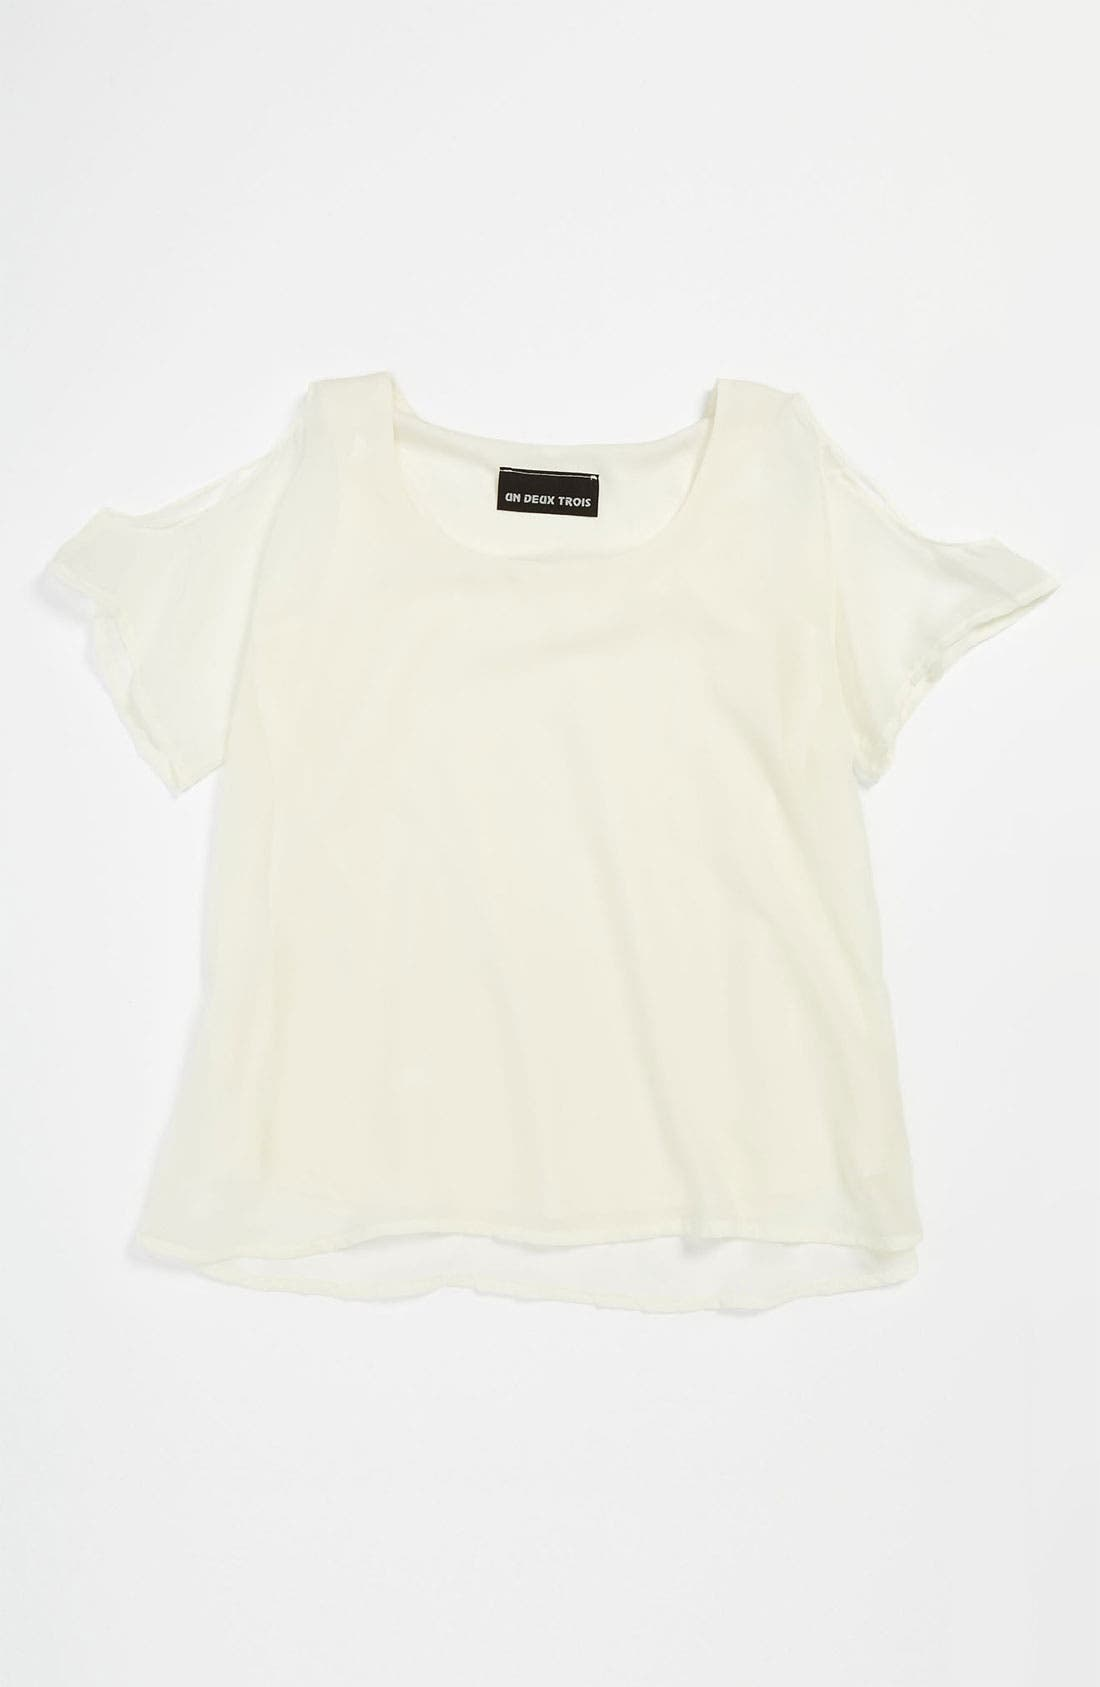 Alternate Image 1 Selected - Un Deux Trois Cold Shoulder Top (Big Girls)